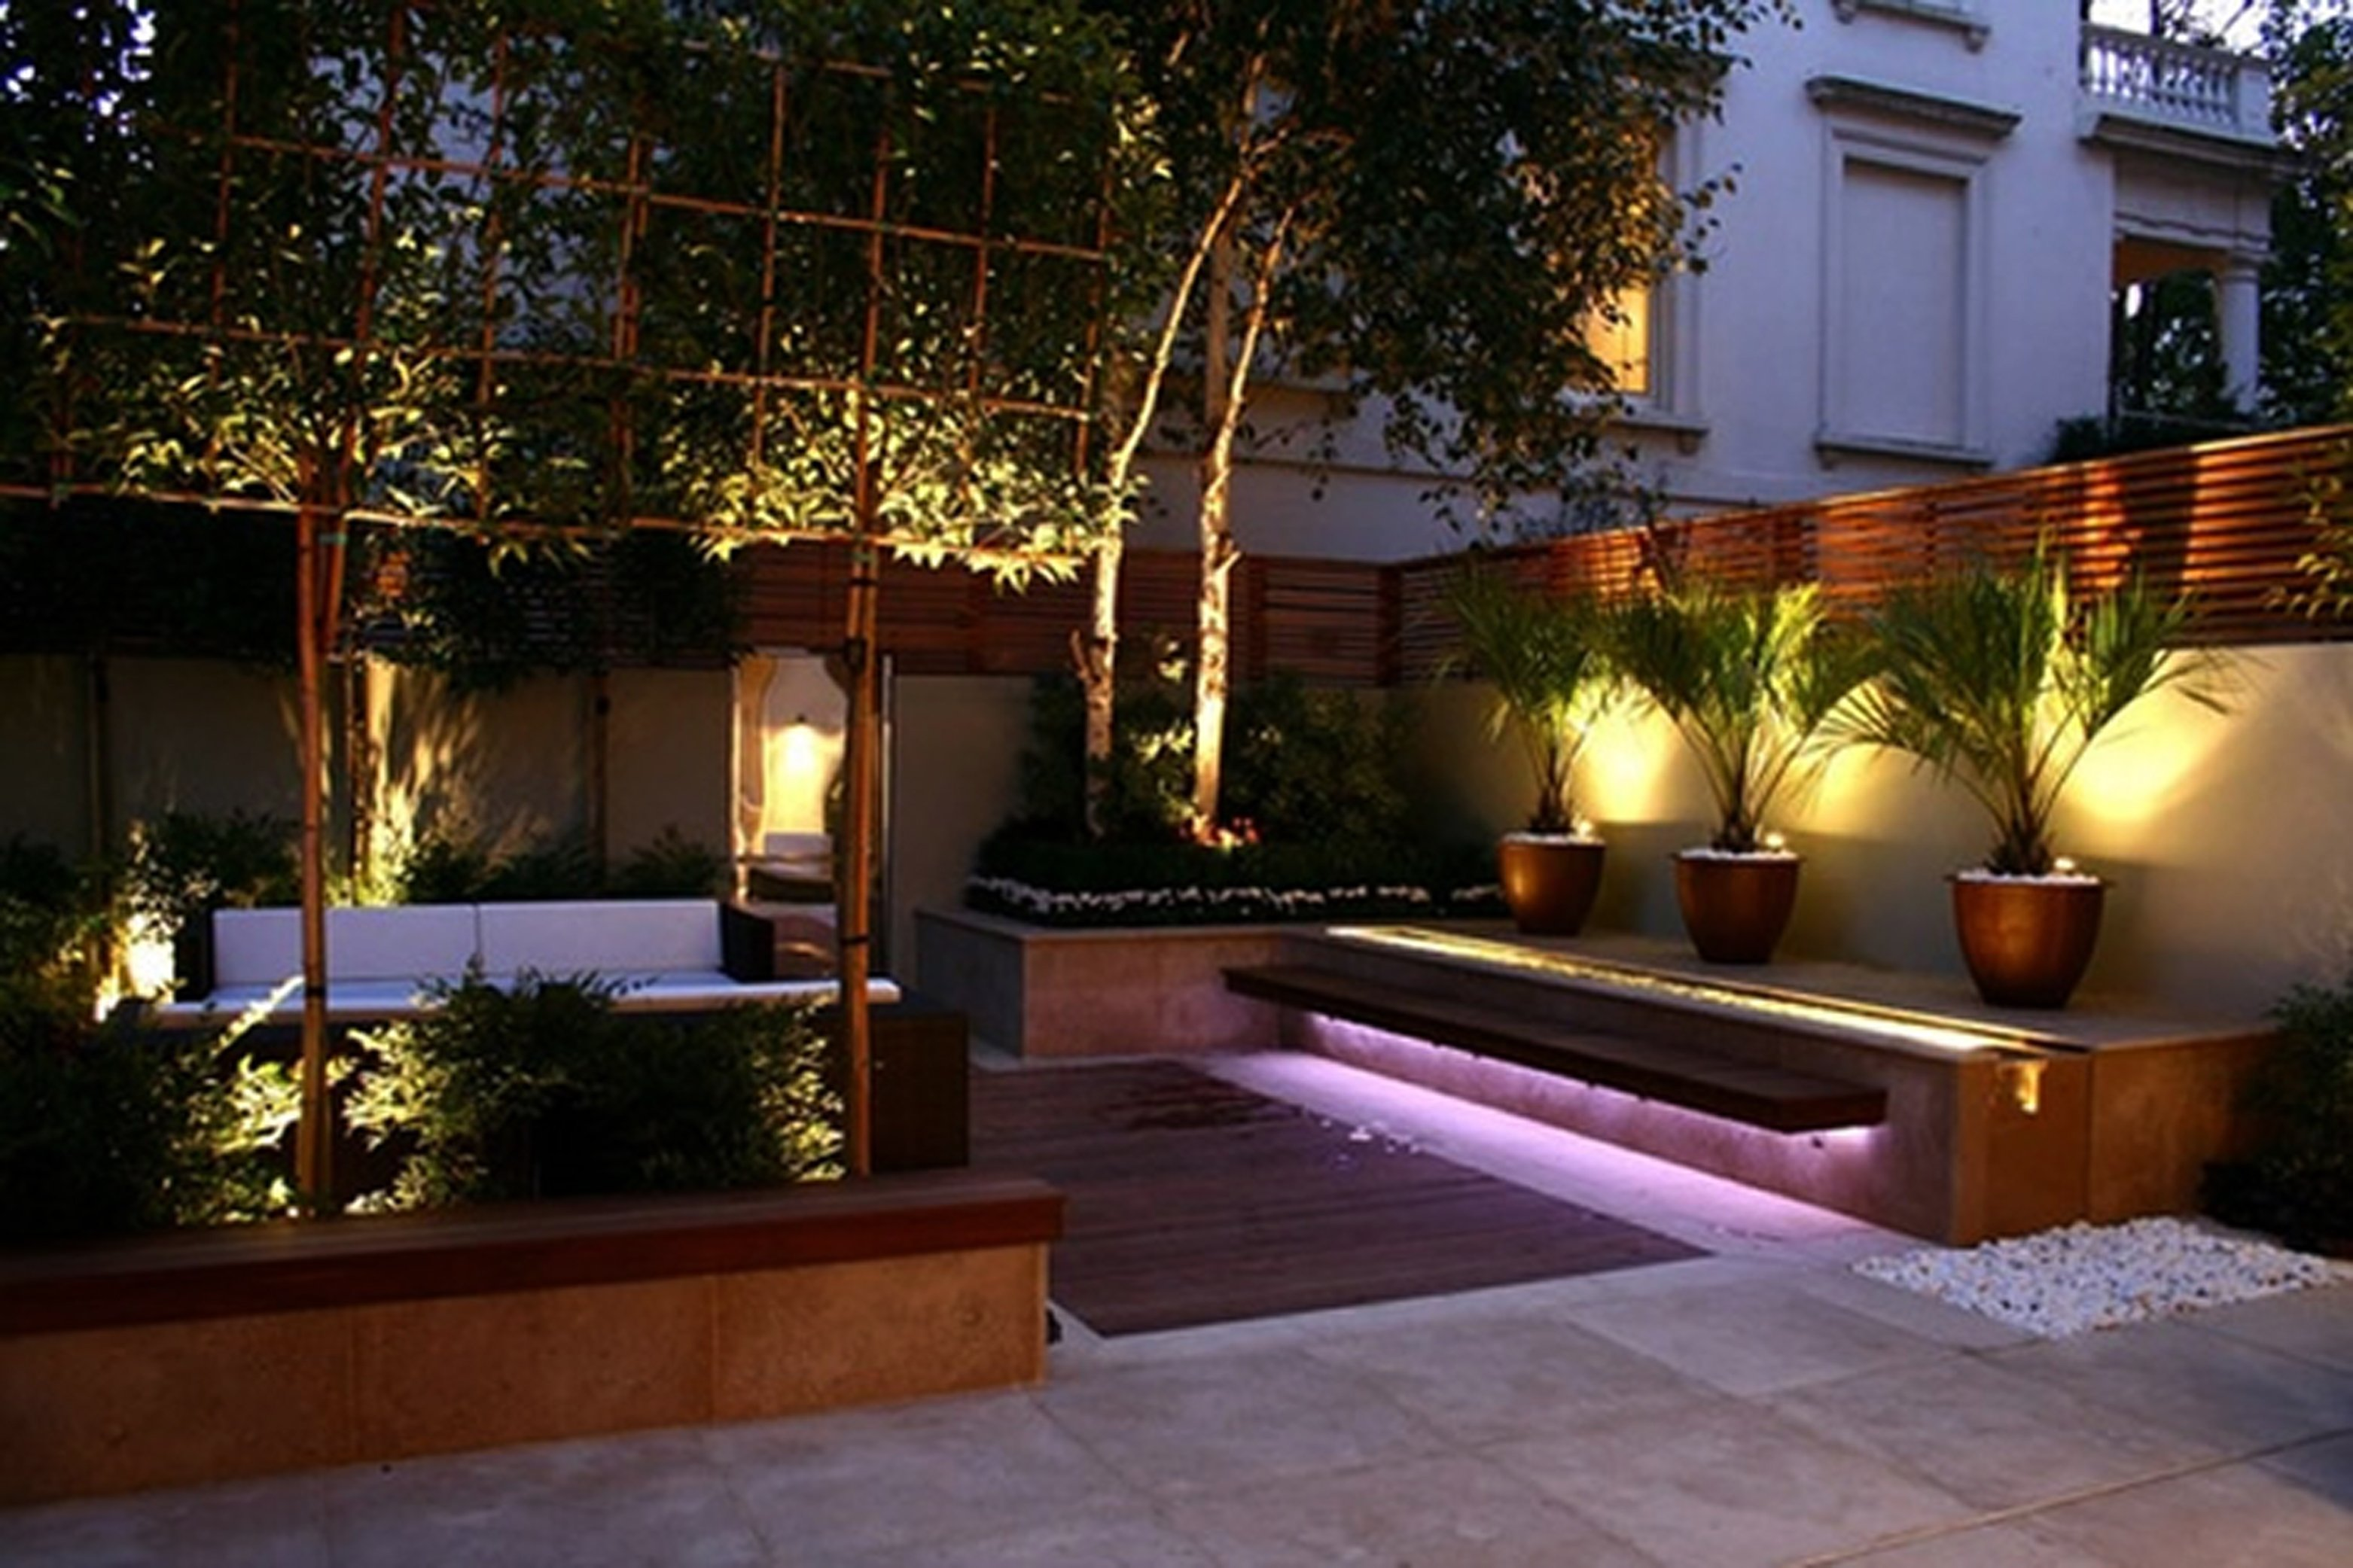 Ideas para decorar exteriores en primavera for Decoracion para patios exteriores